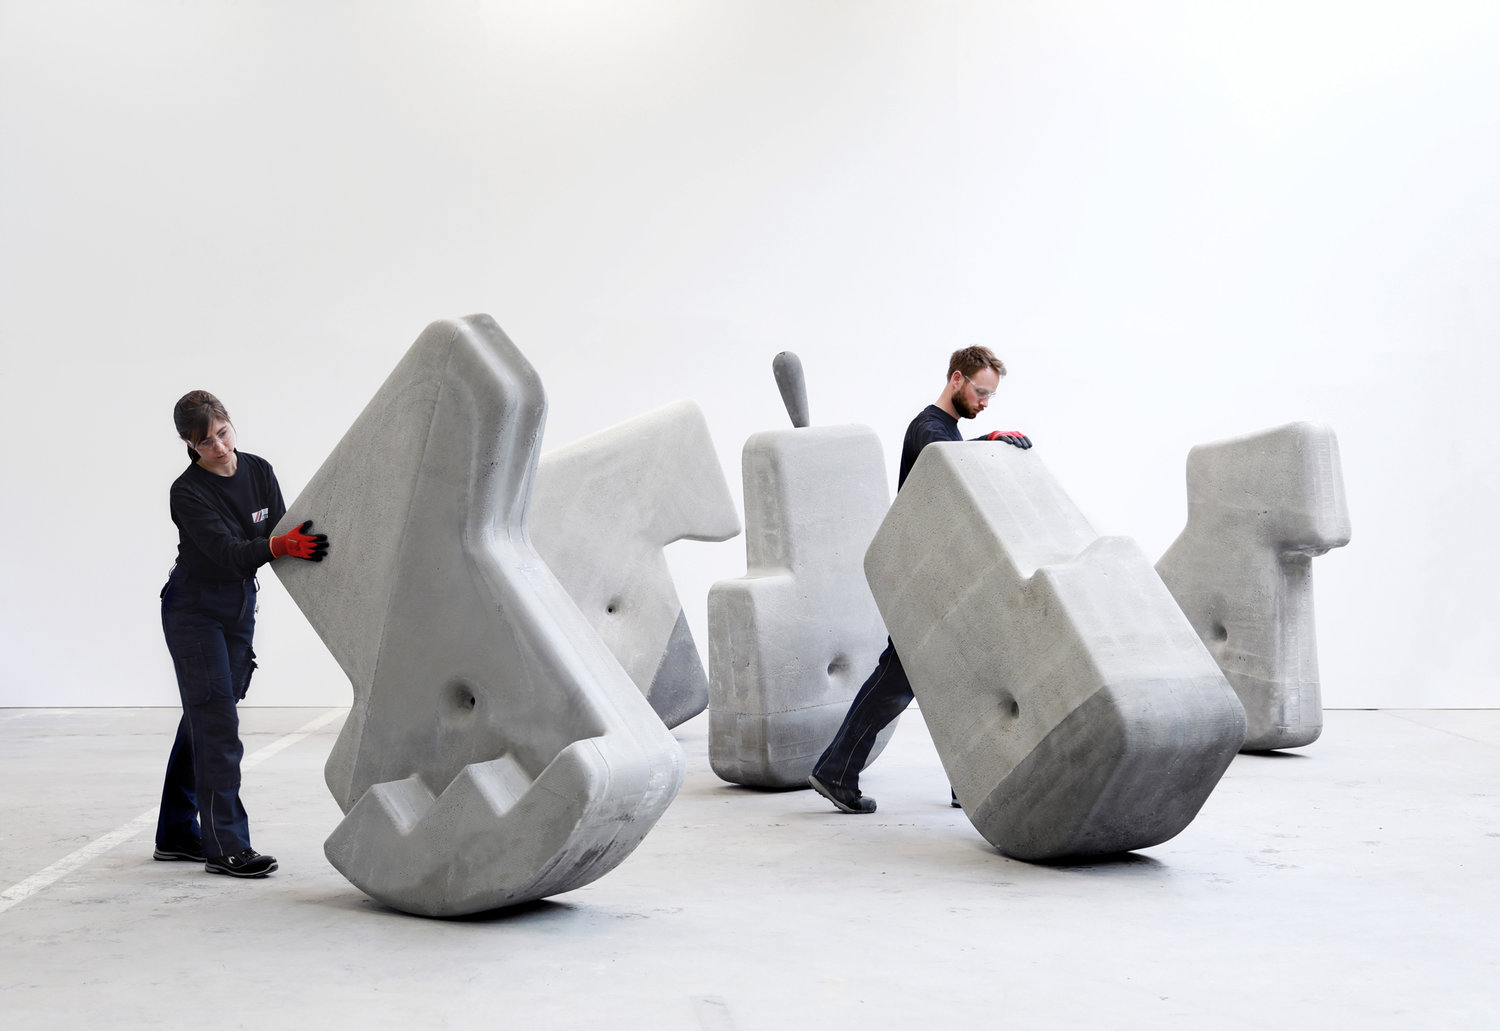 These massive concrete objects are designed to move with ease